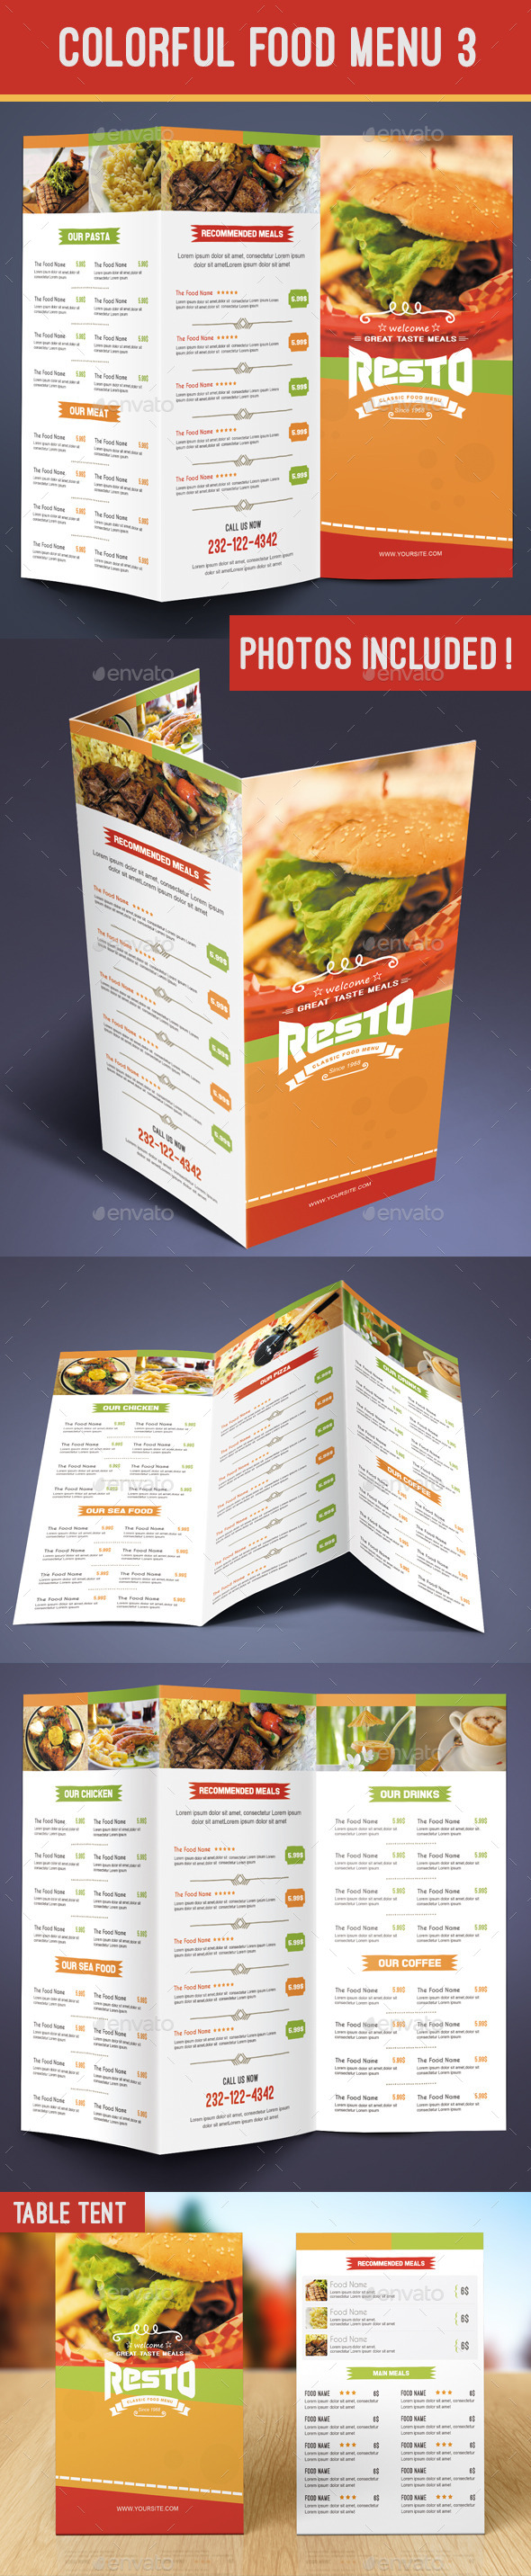 Colorful Food Menu 3 - table tent - Food Menus Print Templates